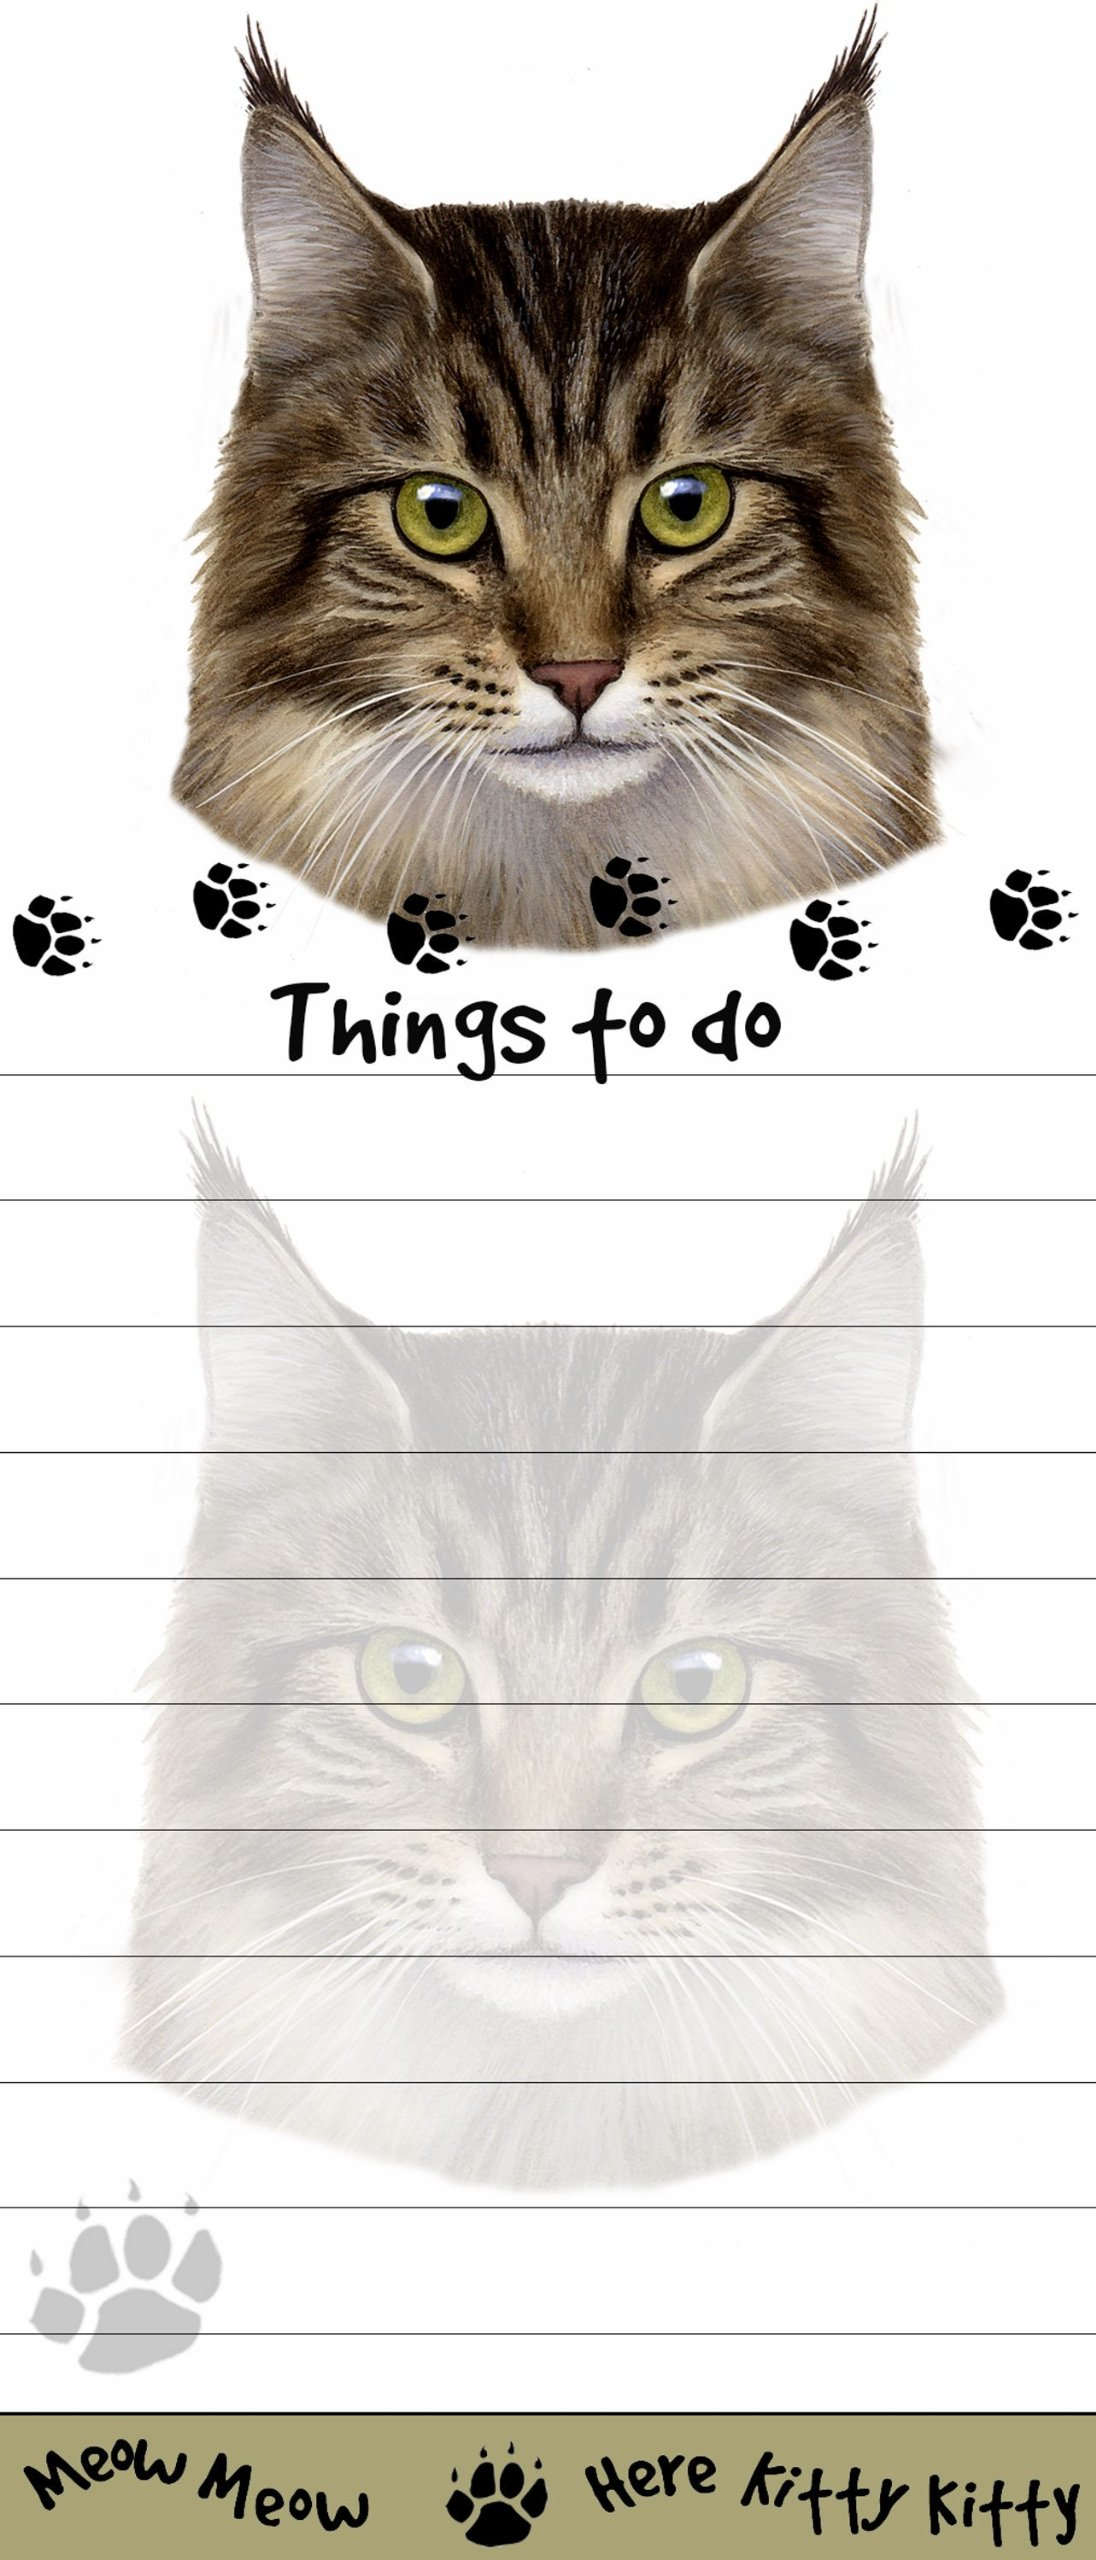 ''Maine Coon Cat Magnetic List Pads'' Uniquely Shaped Sticky Notepad Measures 8.5 by 3.5 Inches